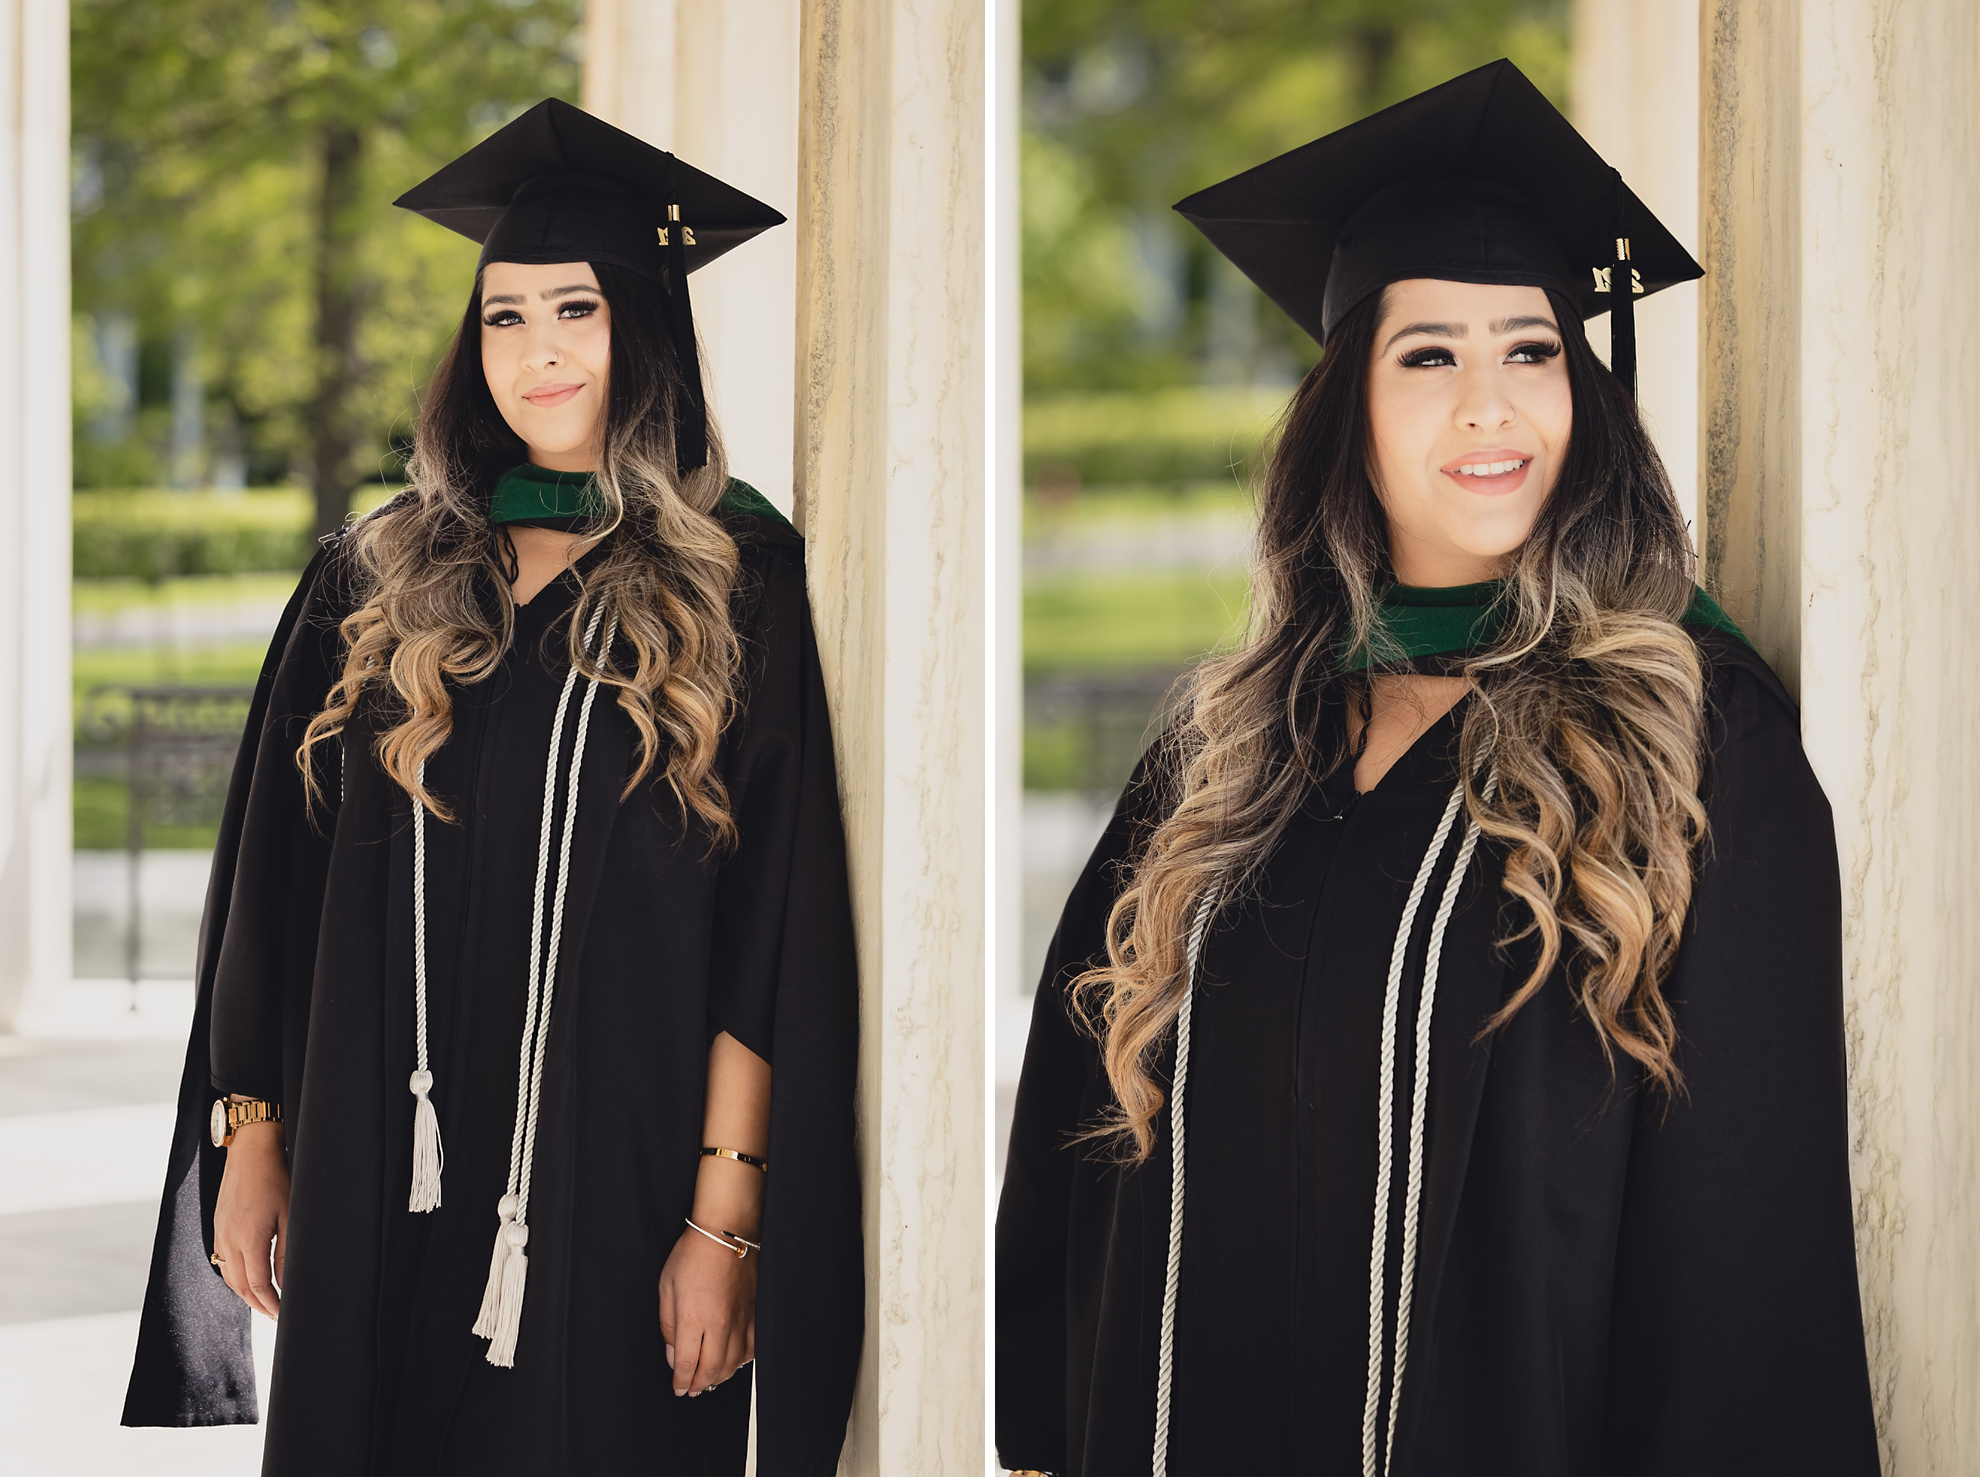 graduate smiles for photographer during senior graduation portrait photography at the History Museum in Buffalo, NY